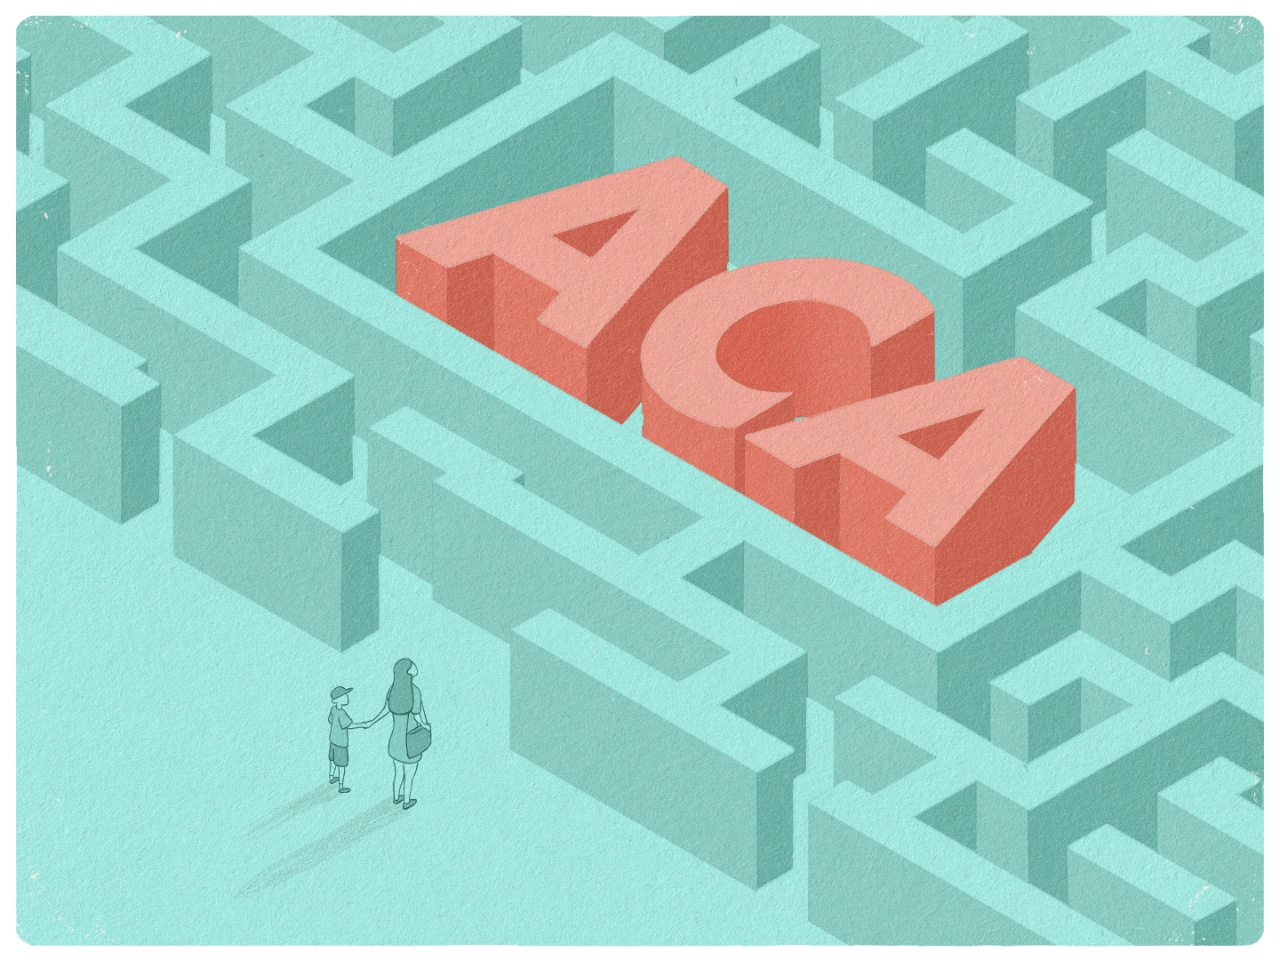 An illustration of people standing at the entrance to a maze with the letters ACA appearing in the middle of the maze.